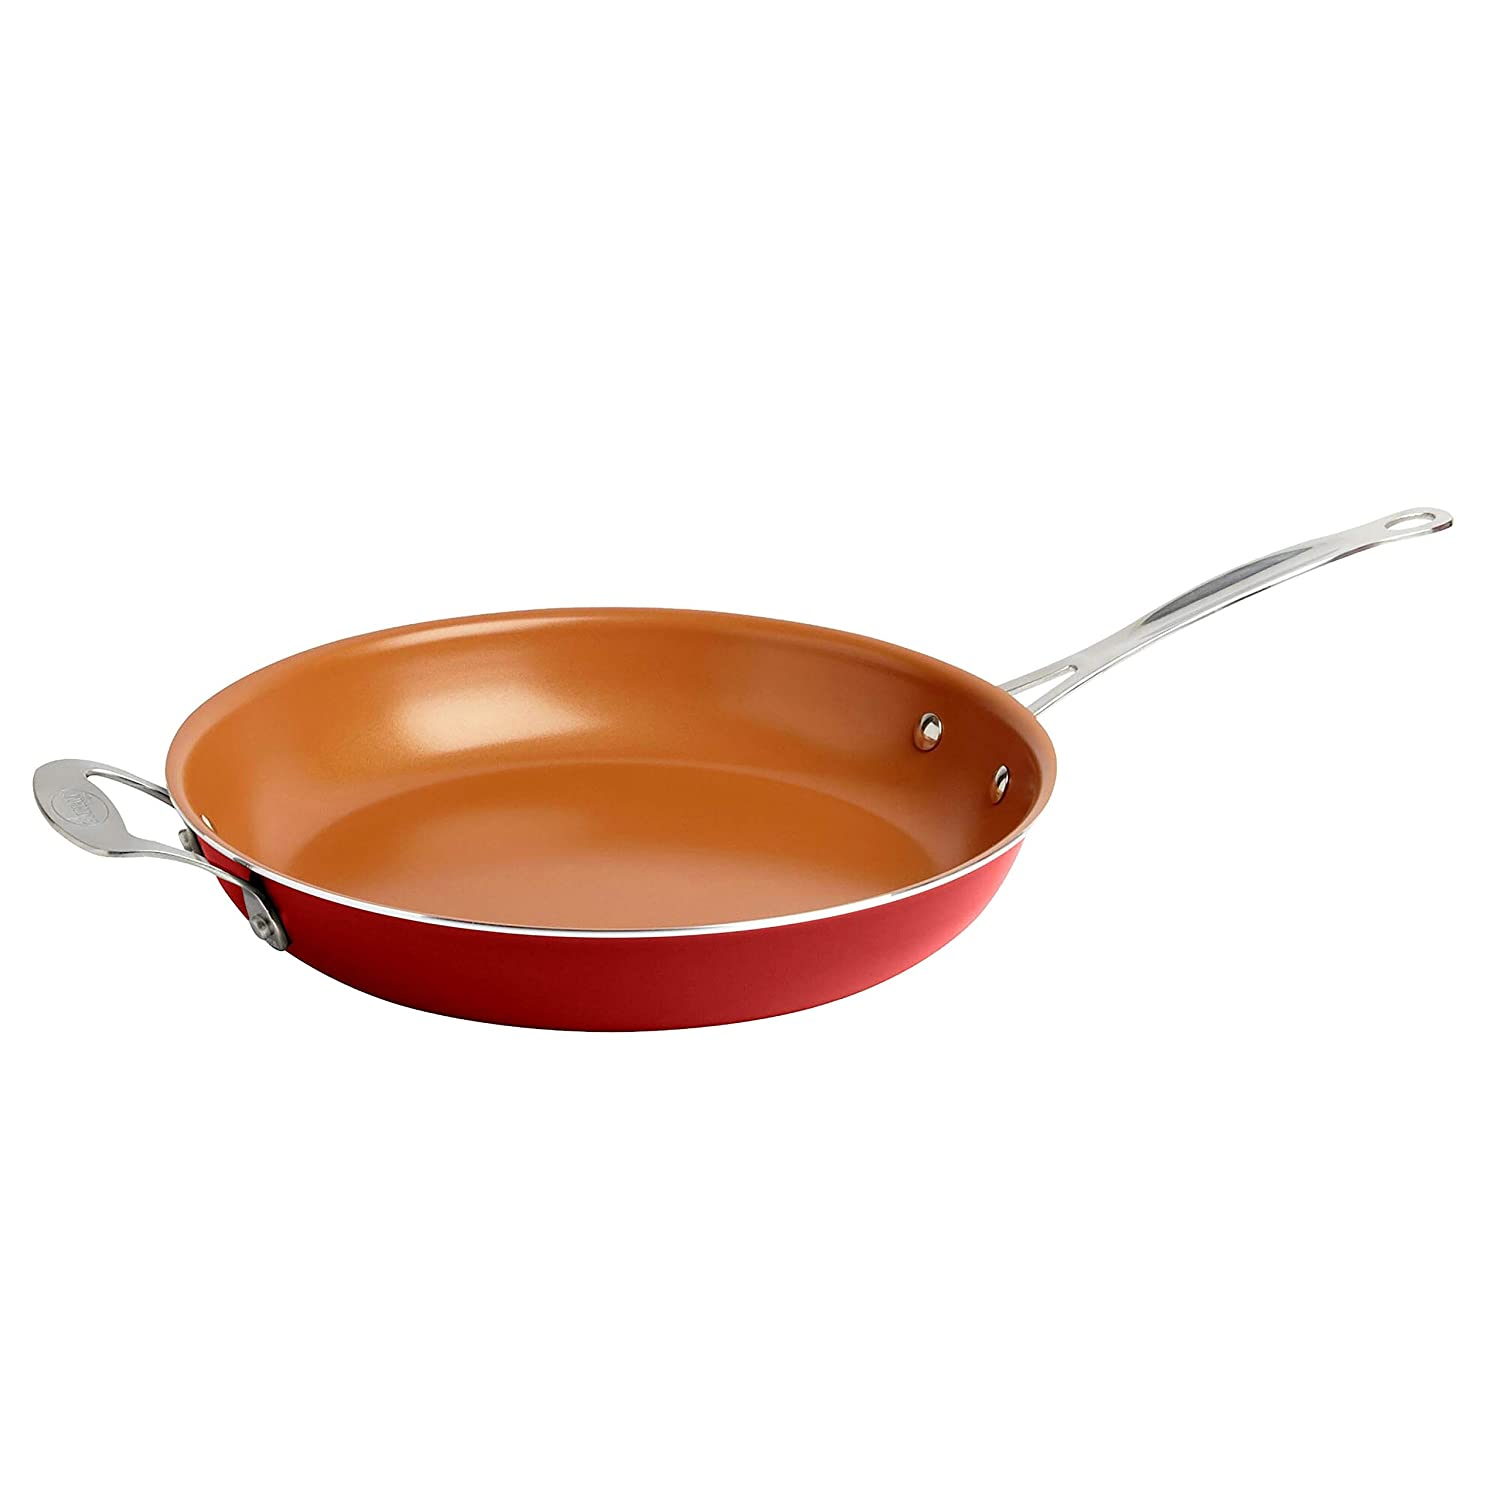 MISC Frying Pan Steel Copper Cookware Kitchen Home Cookwear Culinary Chef Cooking Ceramic Induction Cuisine Skillet Nonstick Orange Dishwasher Safe Lightweight, 9.5 Inch